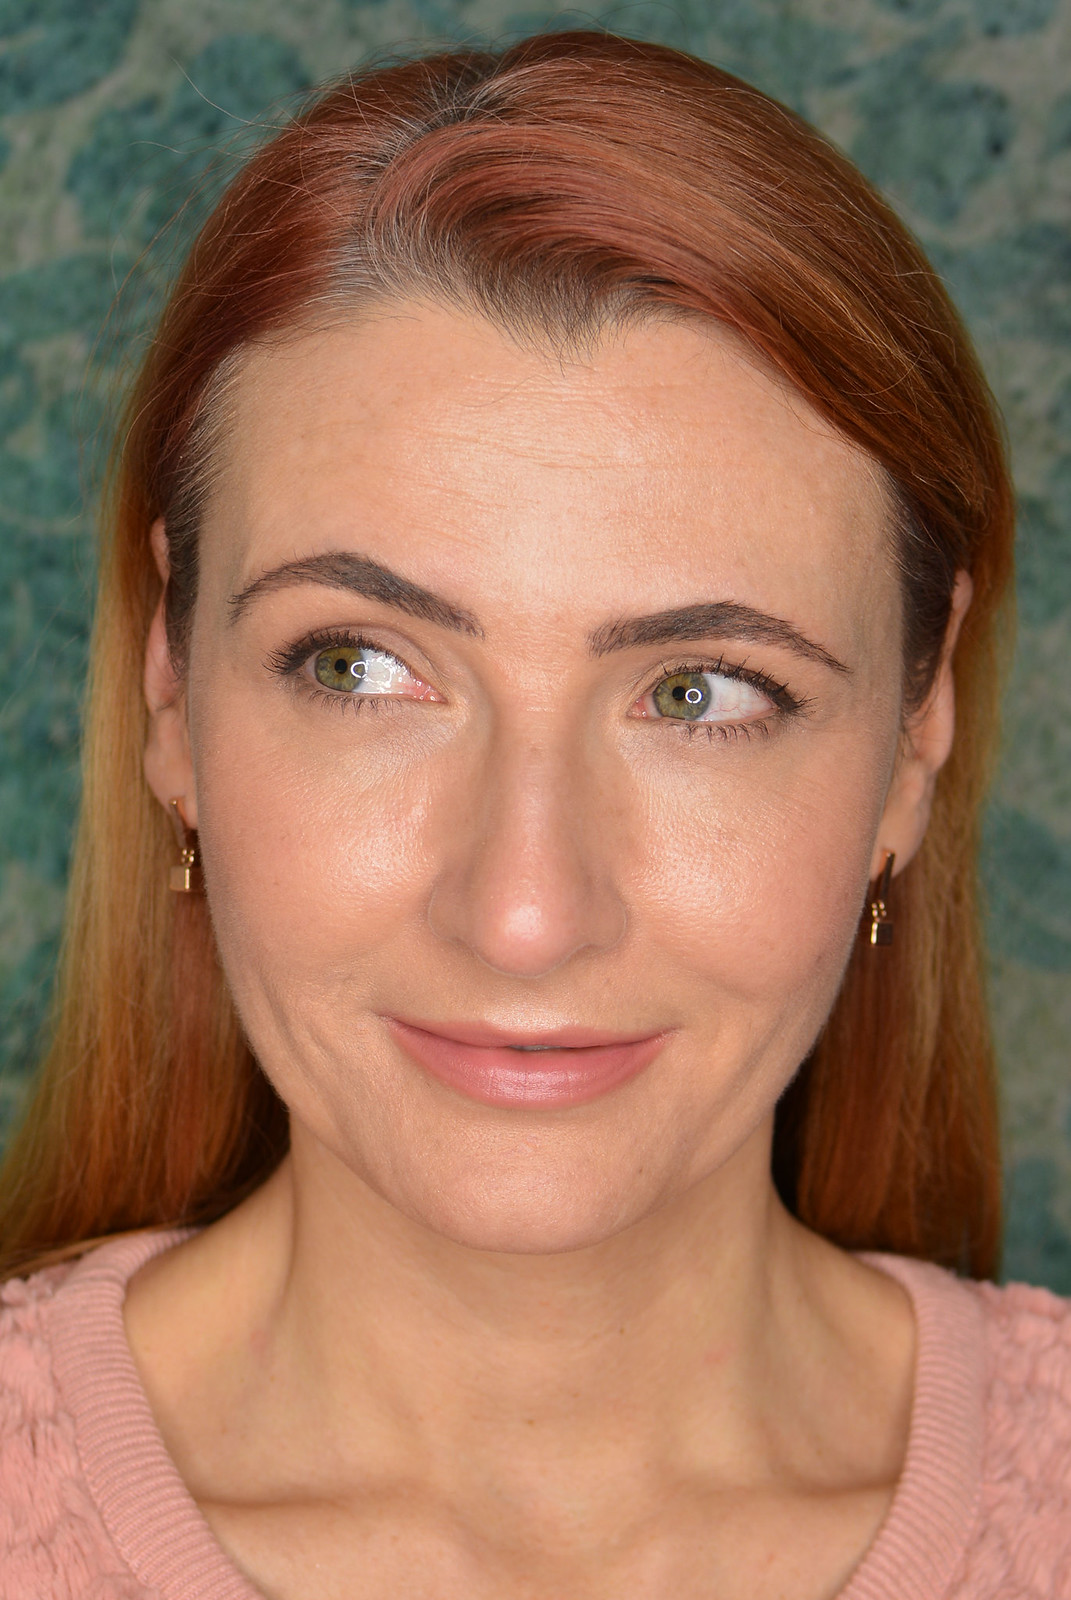 An everyday make-up look for the over 40s   Not Dressed As Lamb